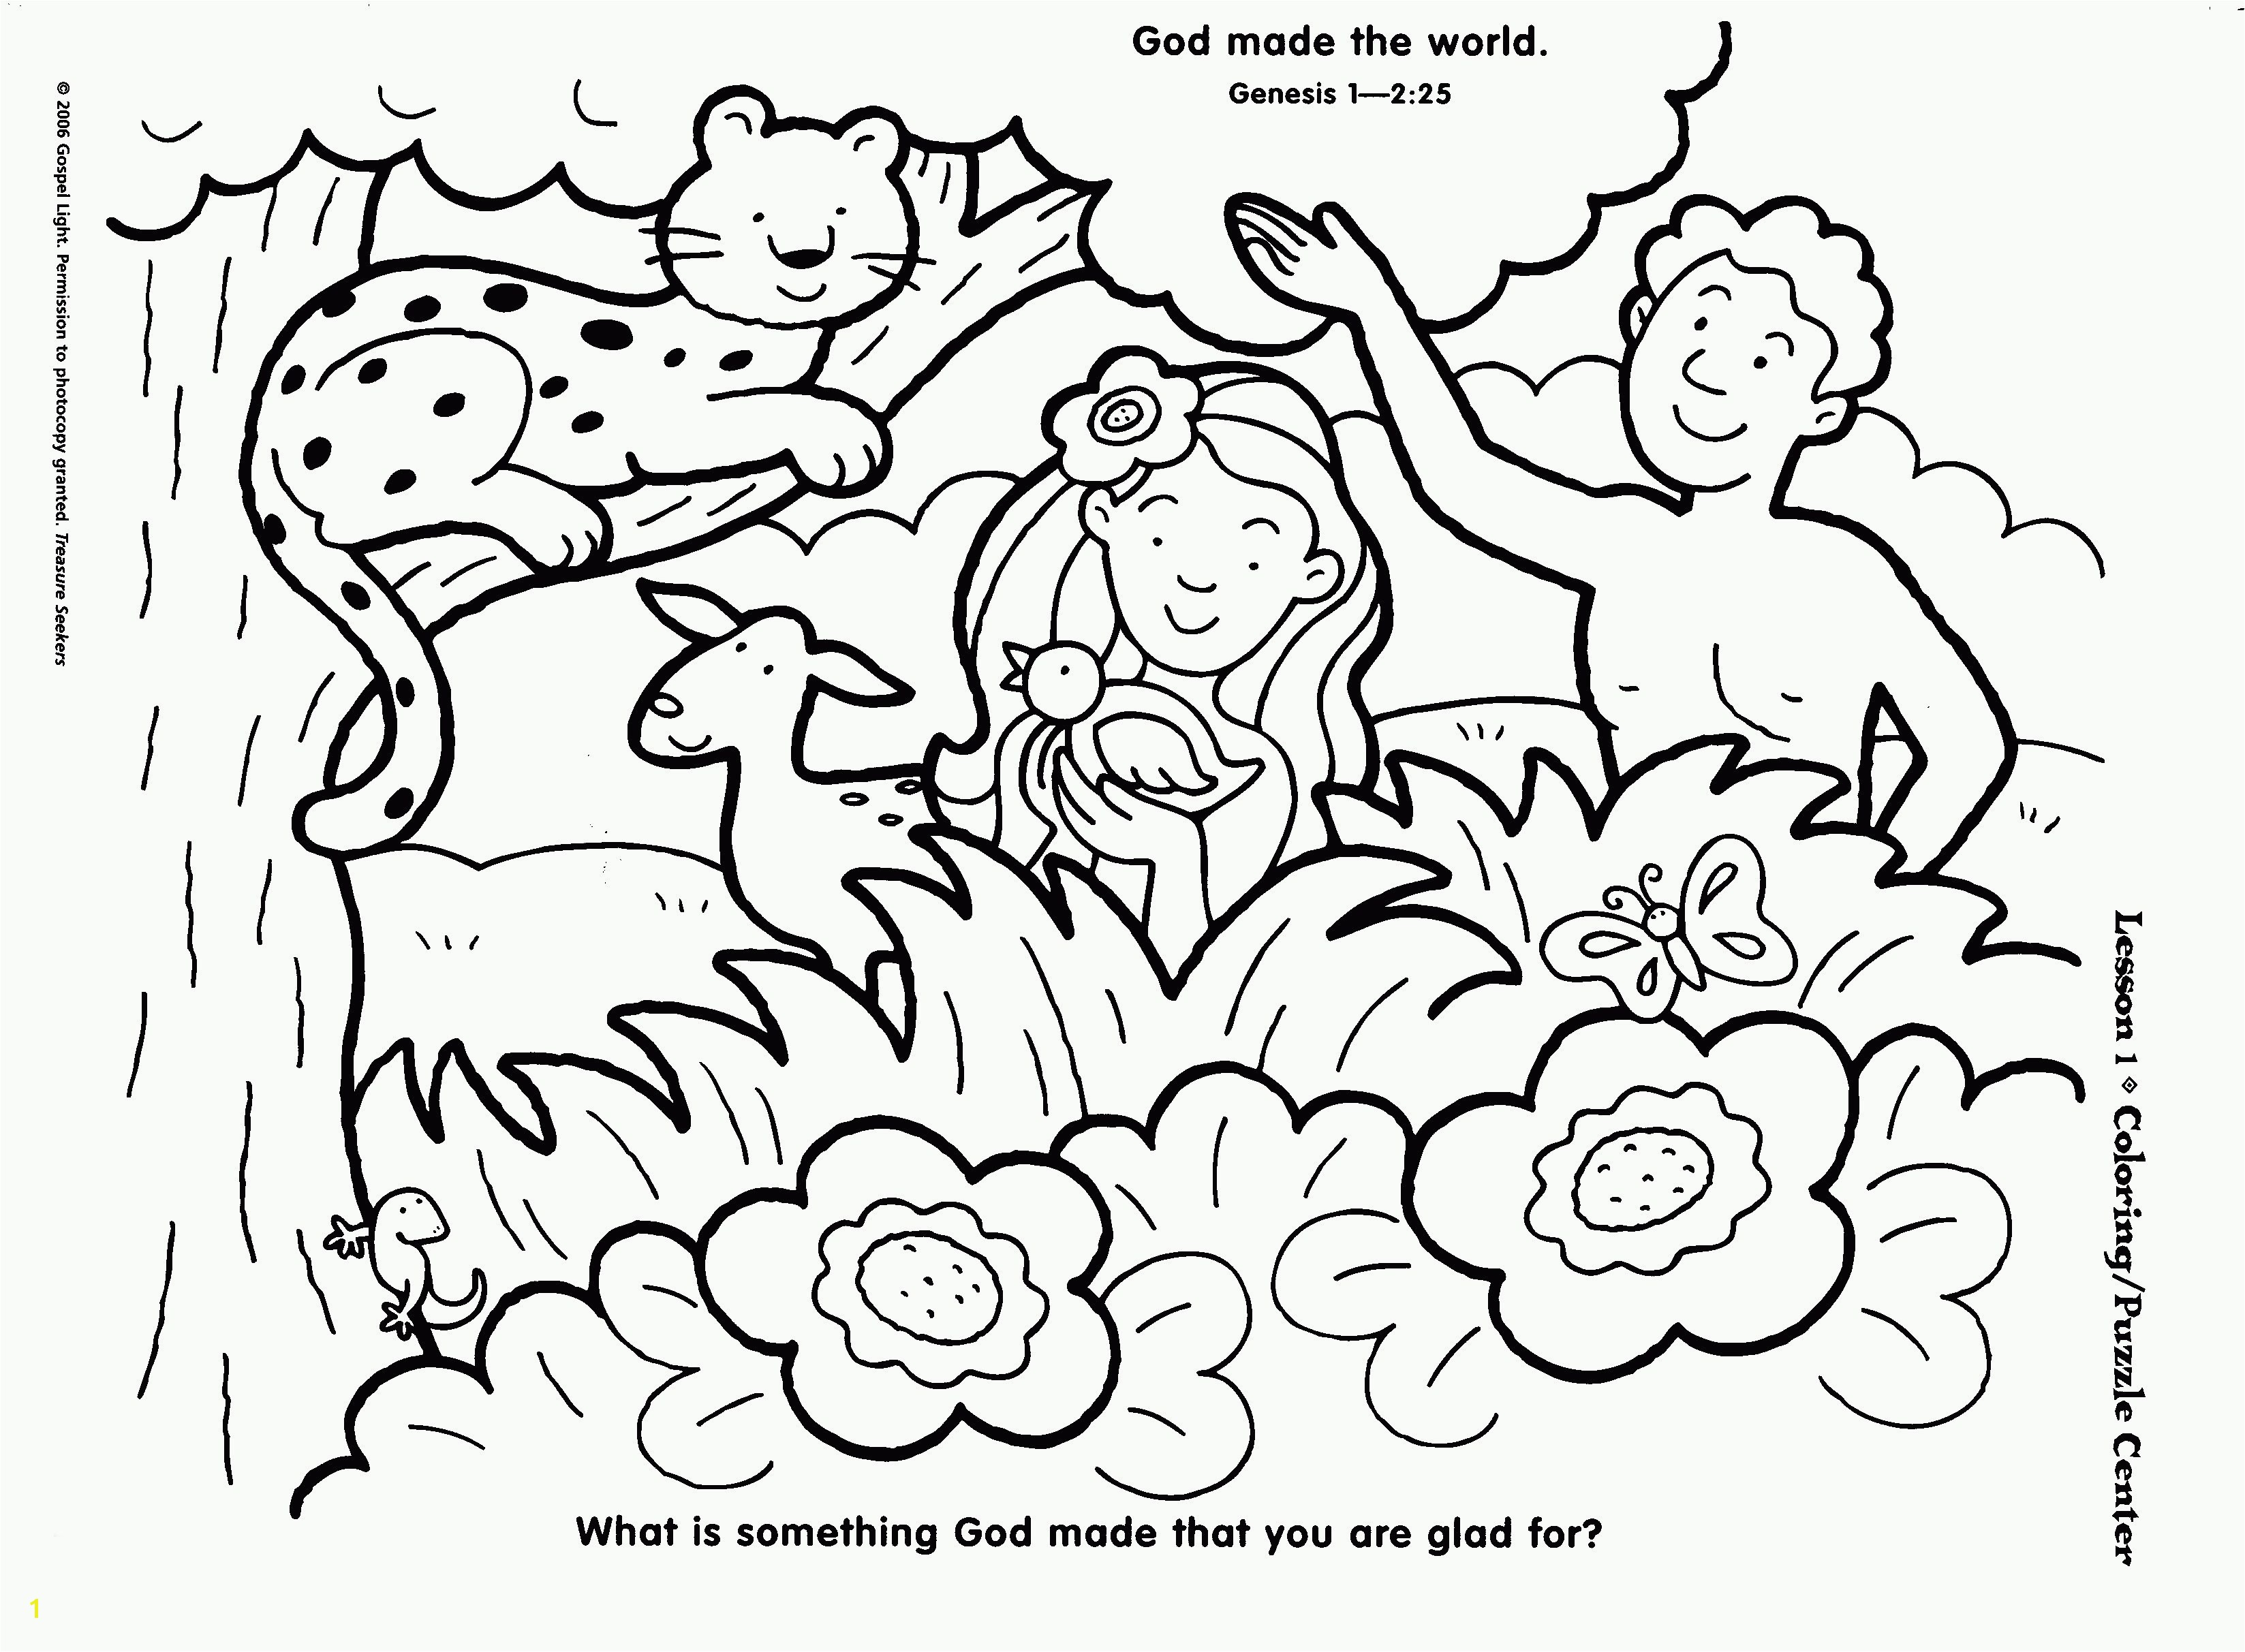 Cartoon Coloring Pages Printable √ Cartoon Coloring Pages Luxury Printable Days Creation Coloring